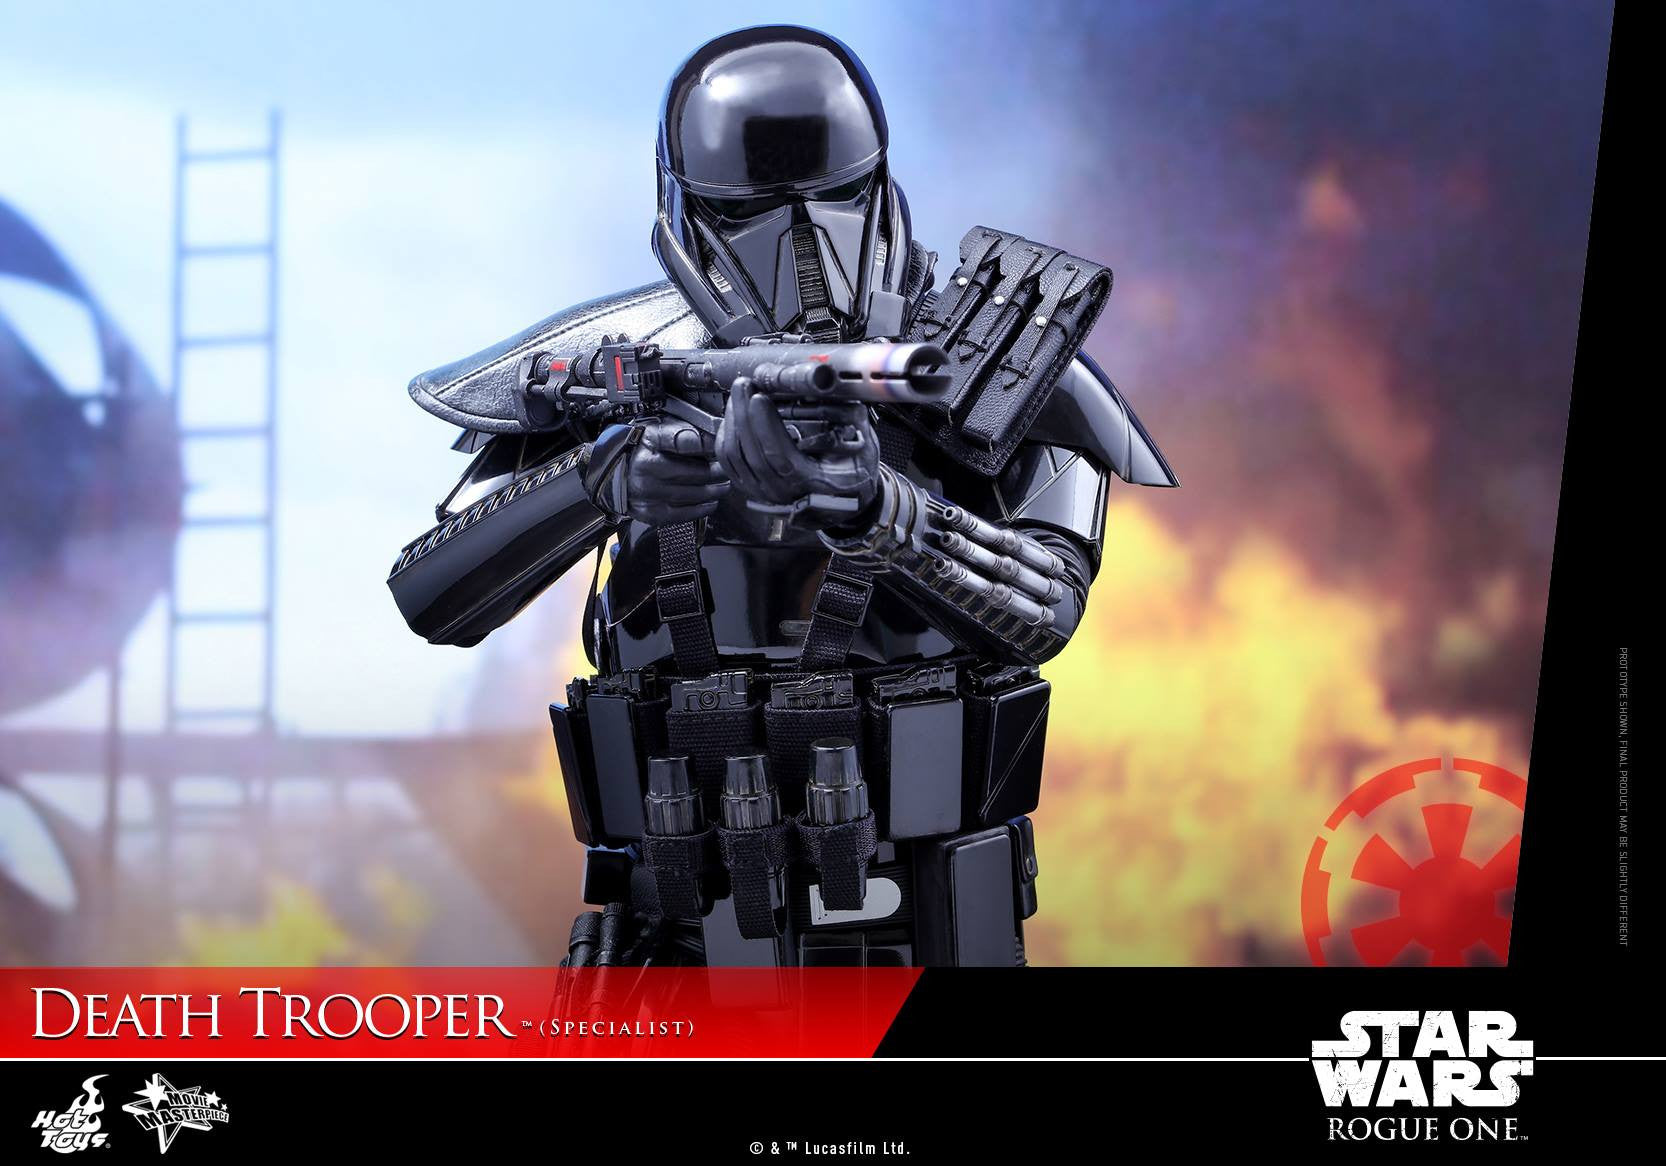 Hot Toys - MMS385 - Rogue One: A Star Wars Story - Death Trooper (Specialist) - Marvelous Toys - 12